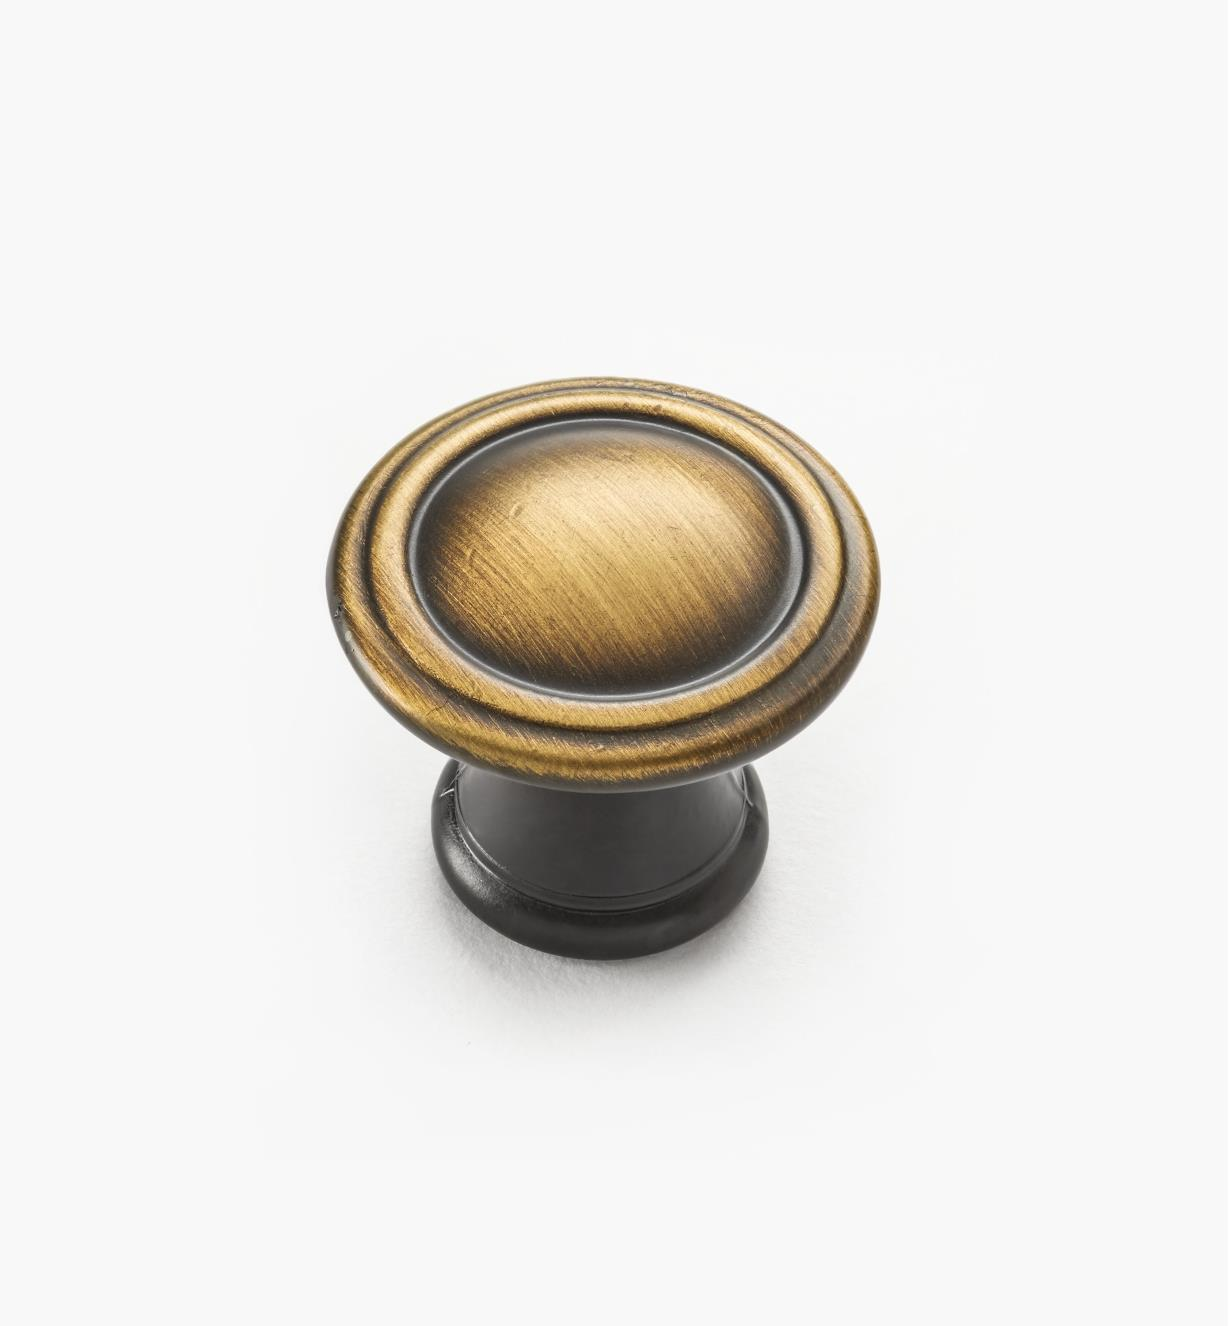 02W4115 - Antique Brass Knob